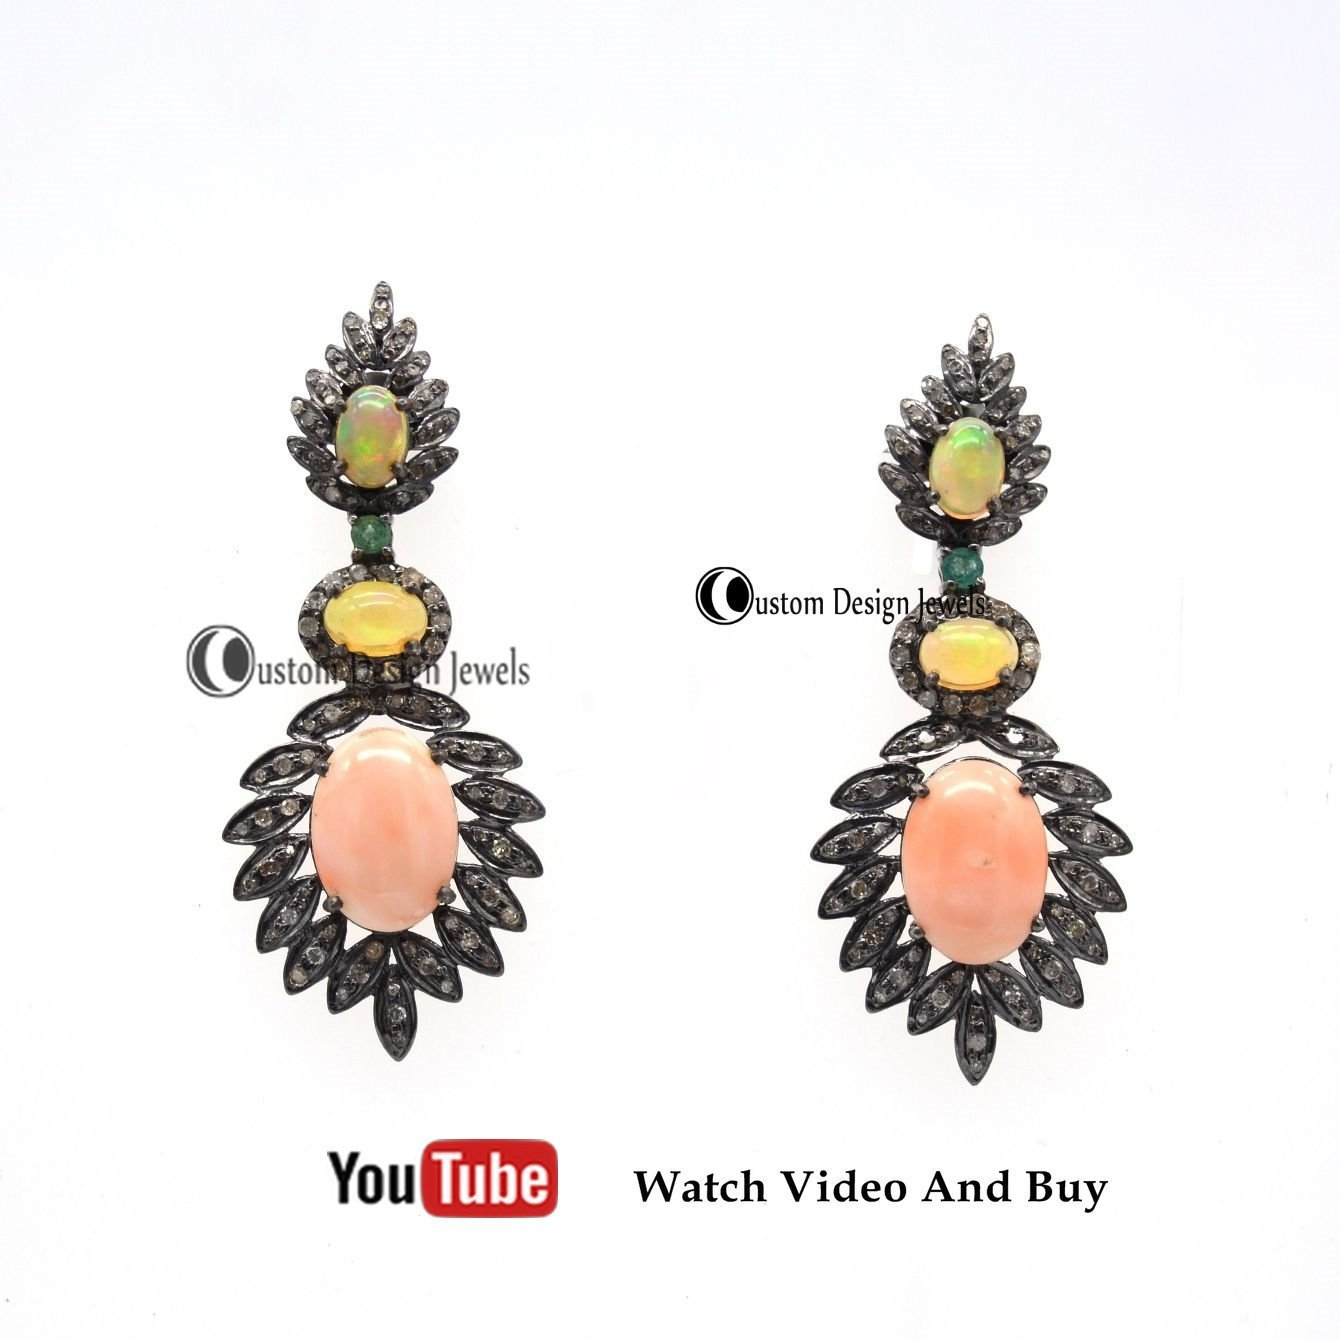 Designer Pave Diamond Earrings, Pave diamond and Opal earring, Christmas gift jewellery, watchandbuy